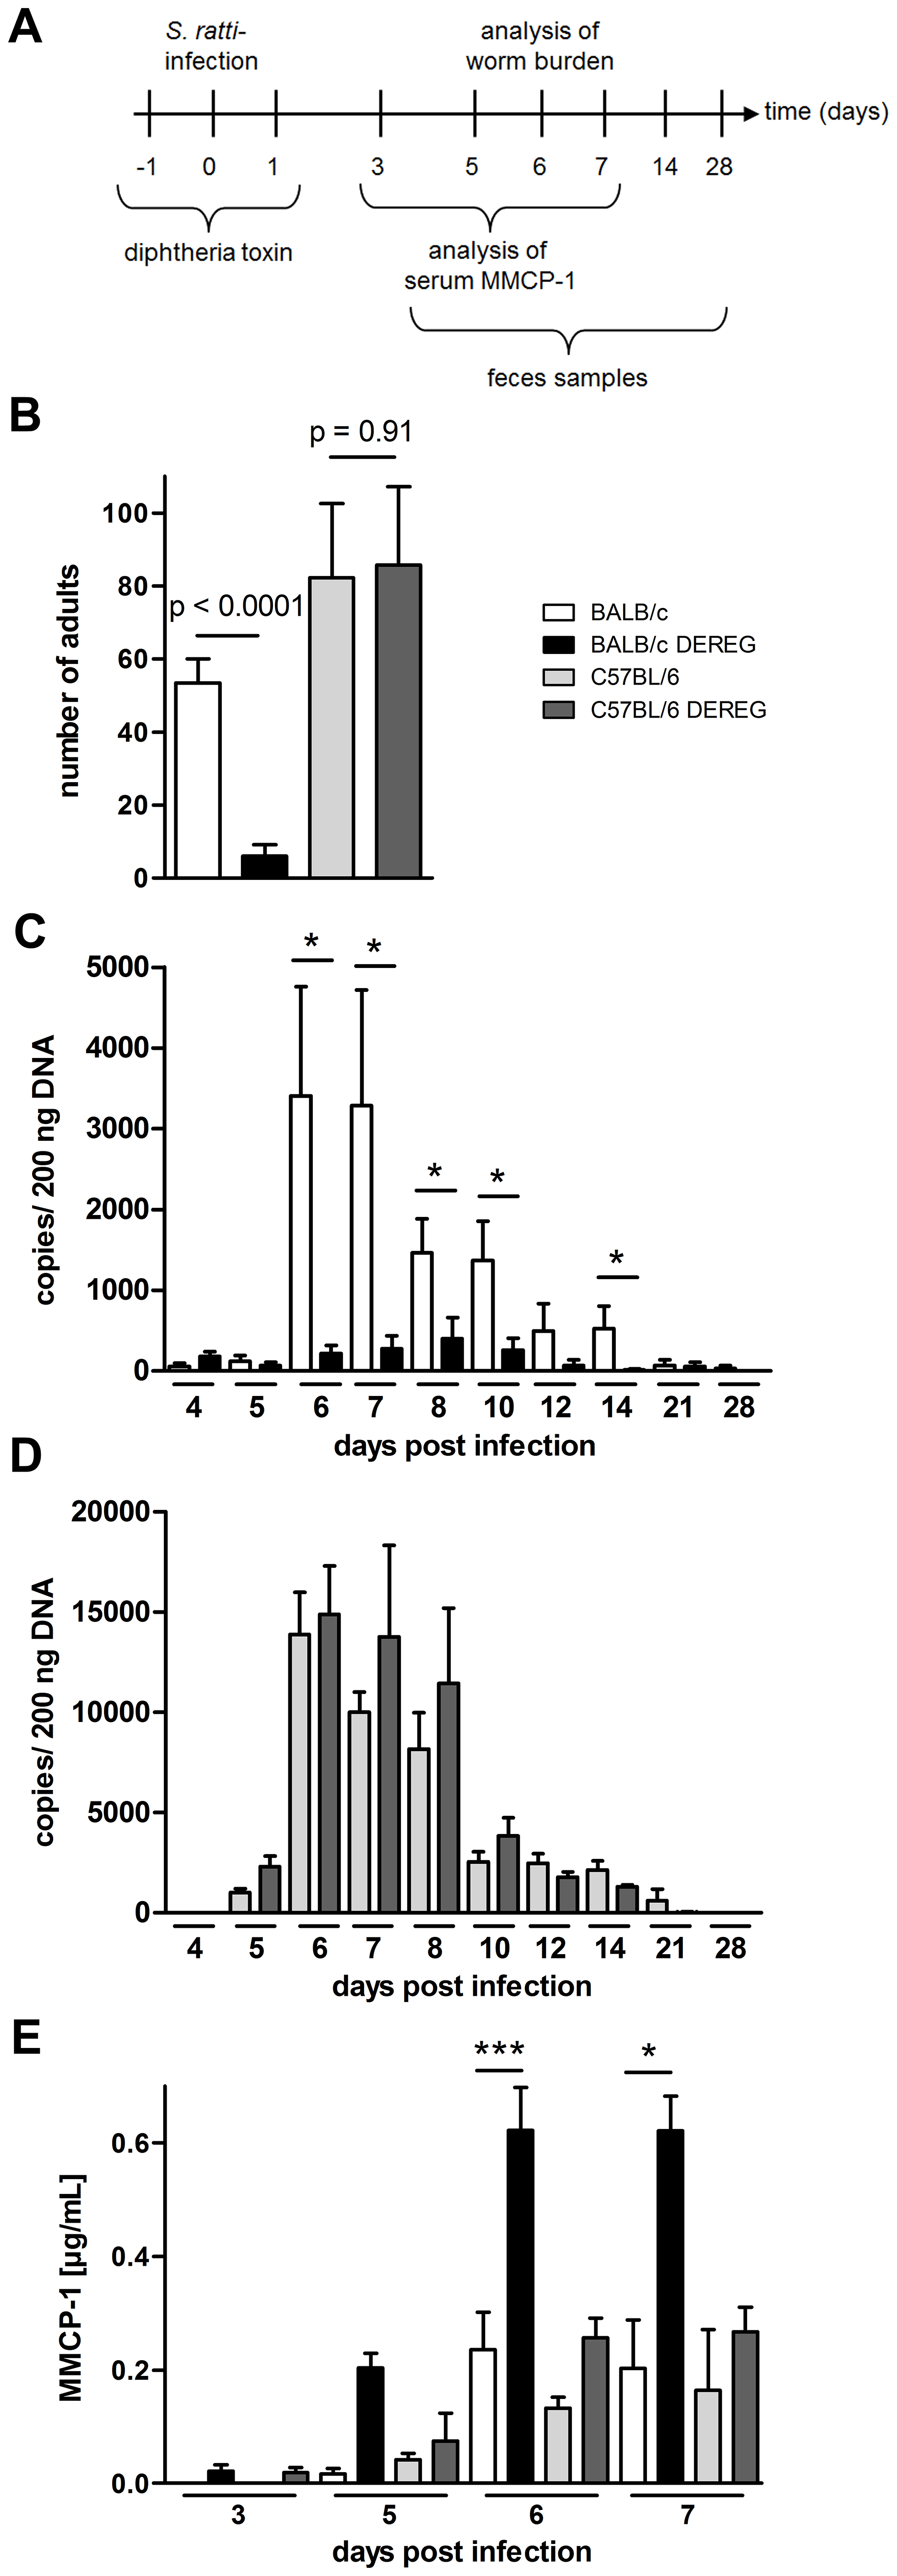 Increased resistance to S. <i>ratti</i> infection in Treg-depleted BALB/c DEREG but not in C57BL/6 DEREG mice.